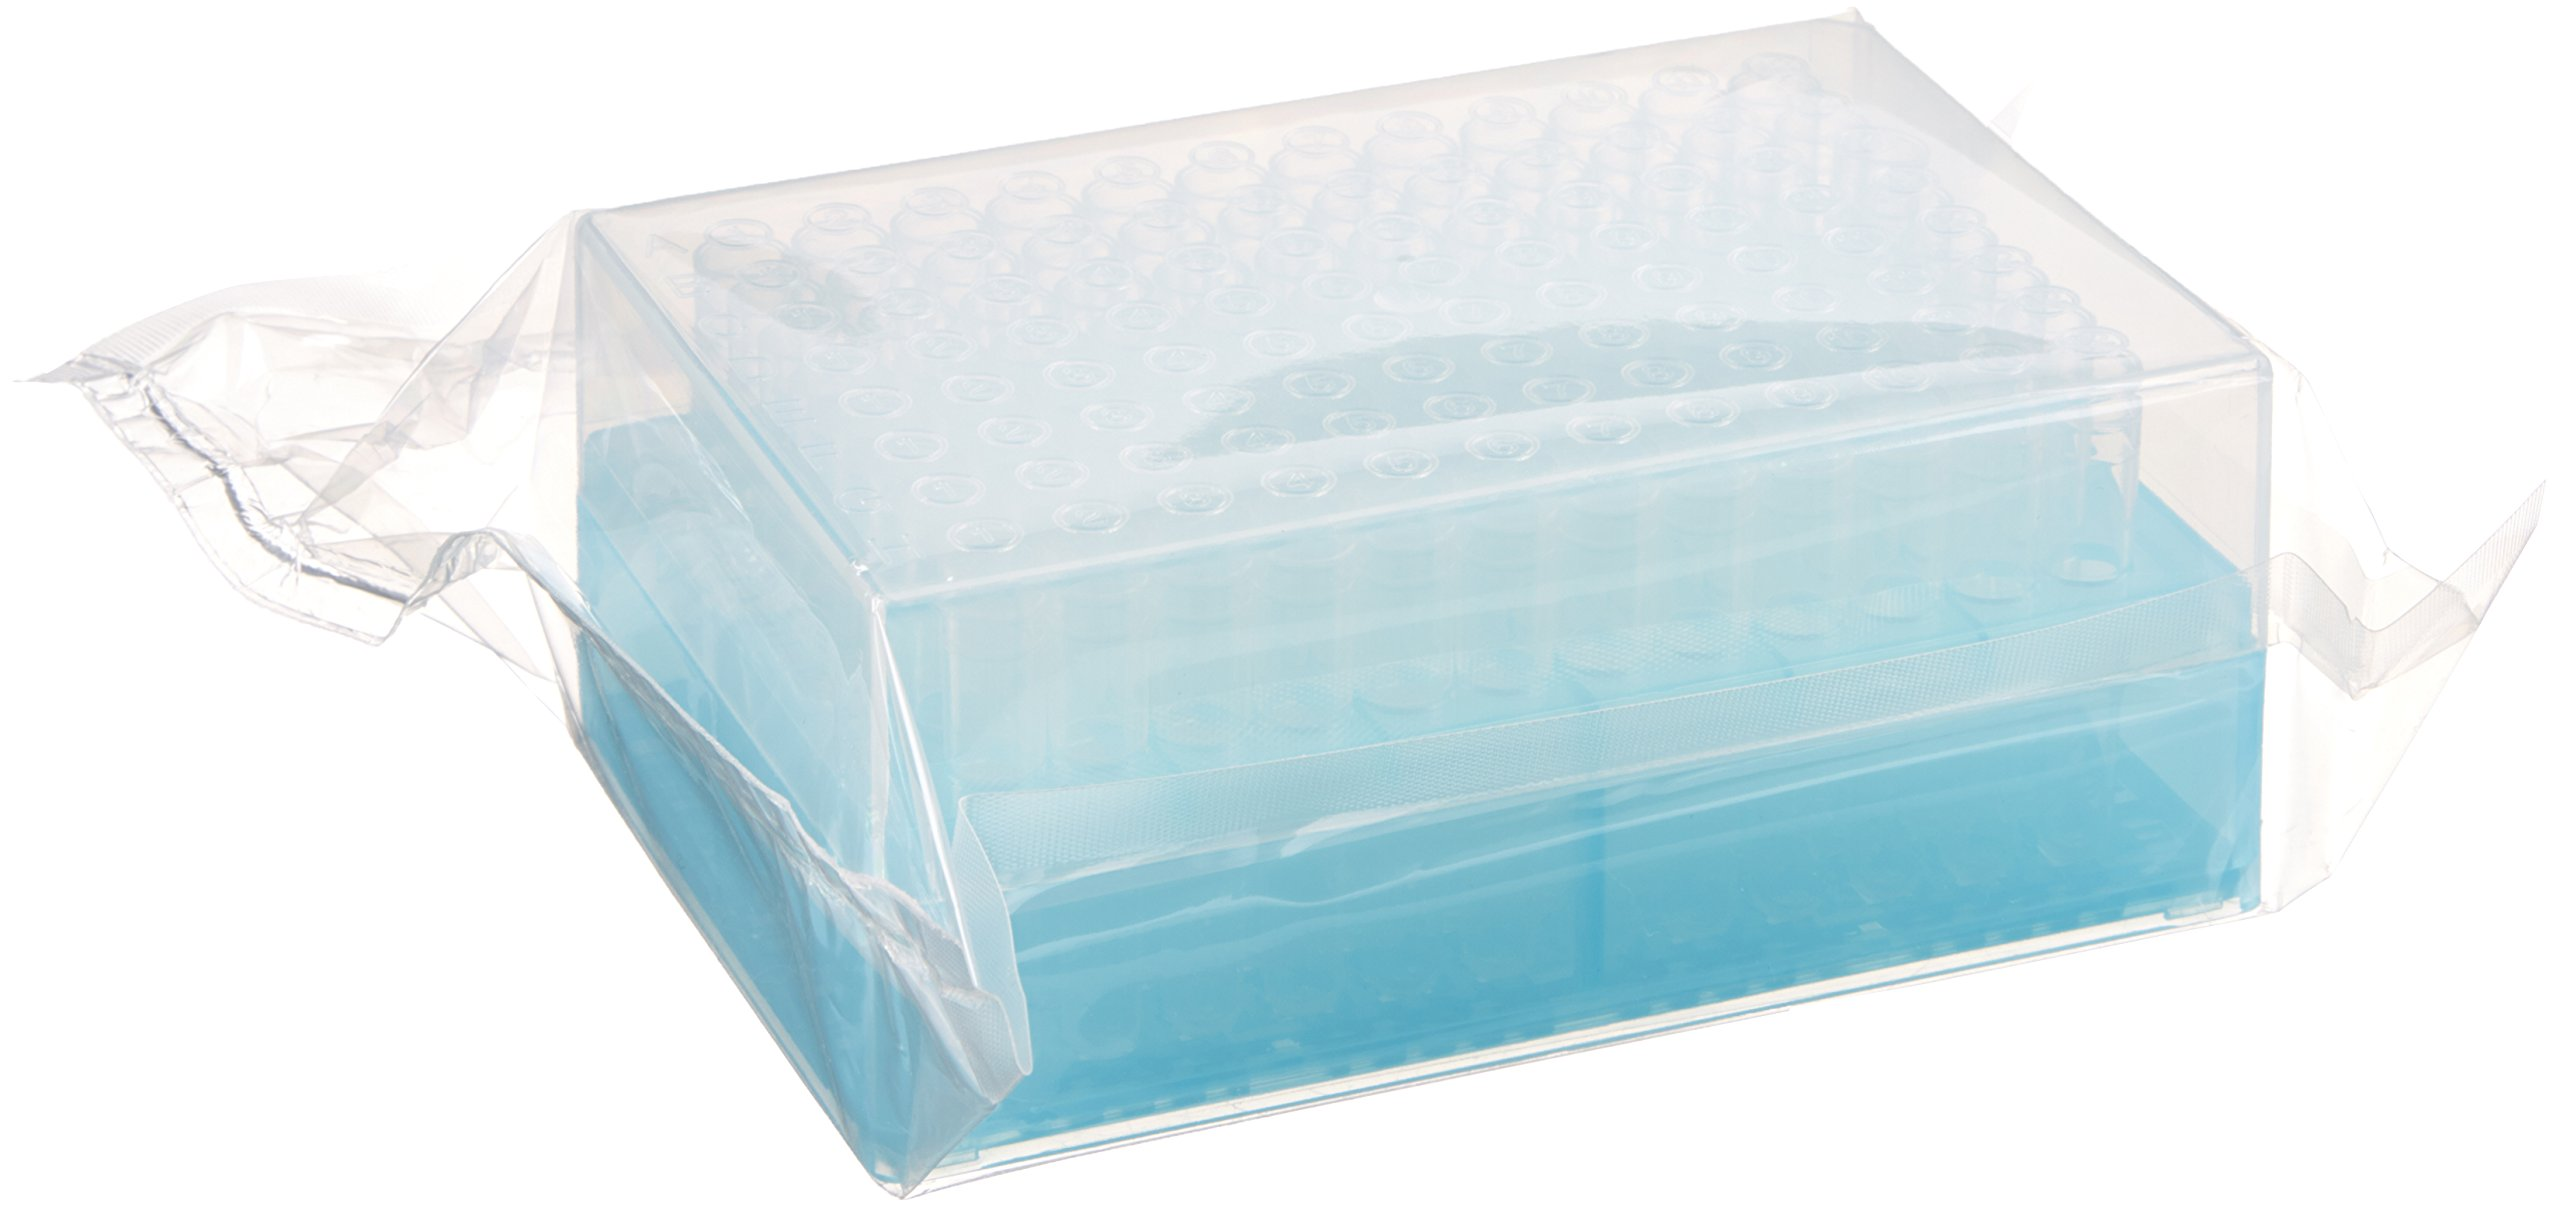 National Scientific TN0946-01RS MicroTube Rack for 1.1ml Sterile Single MicroTubes (Case of 4800)